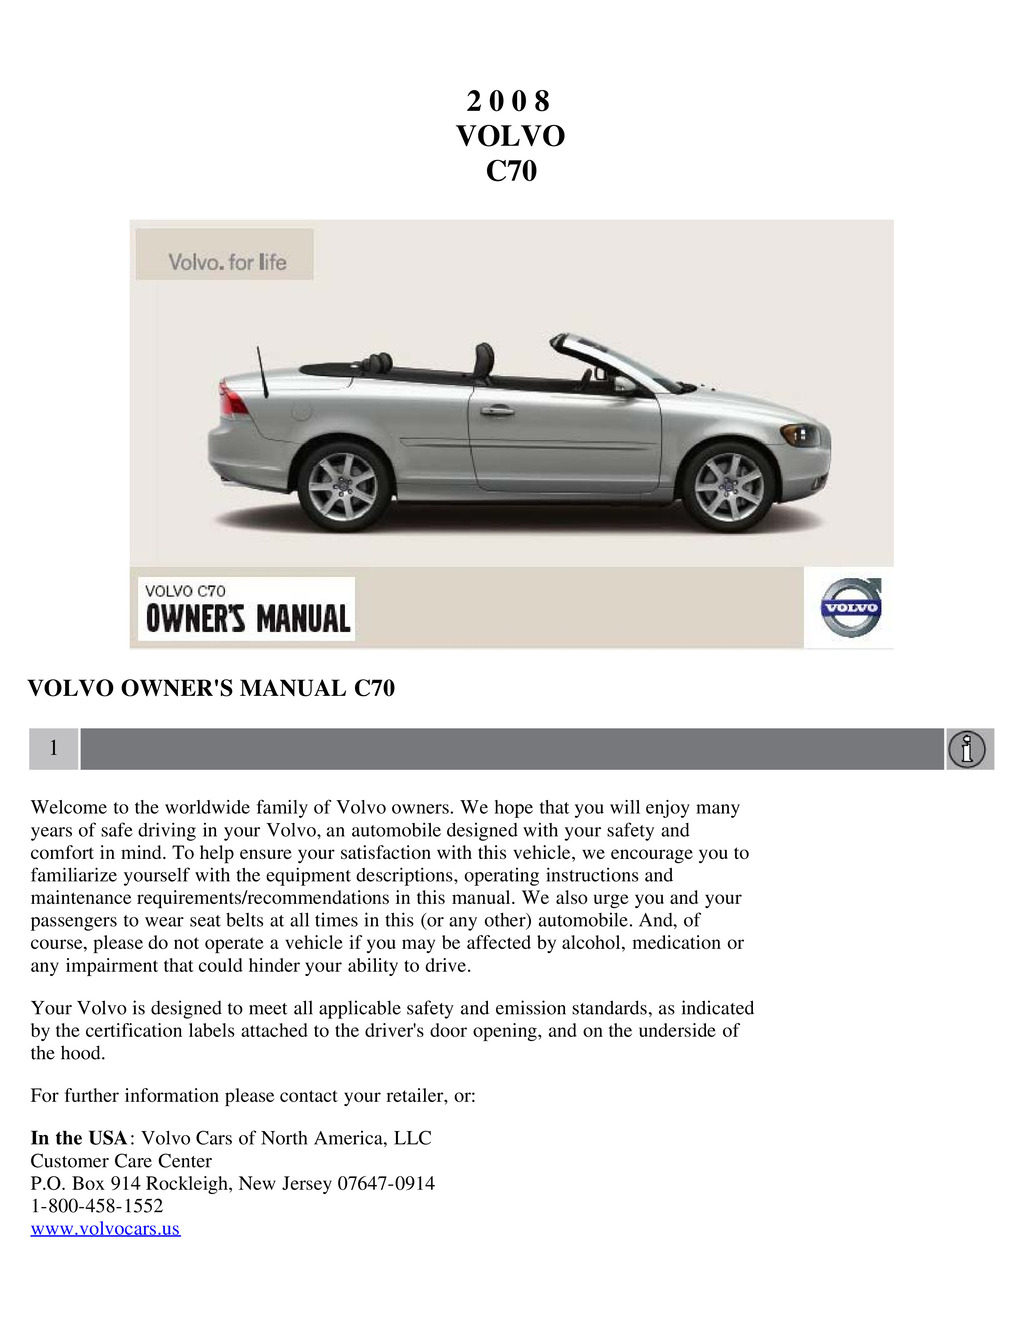 2008 Volvo C70 owners manual